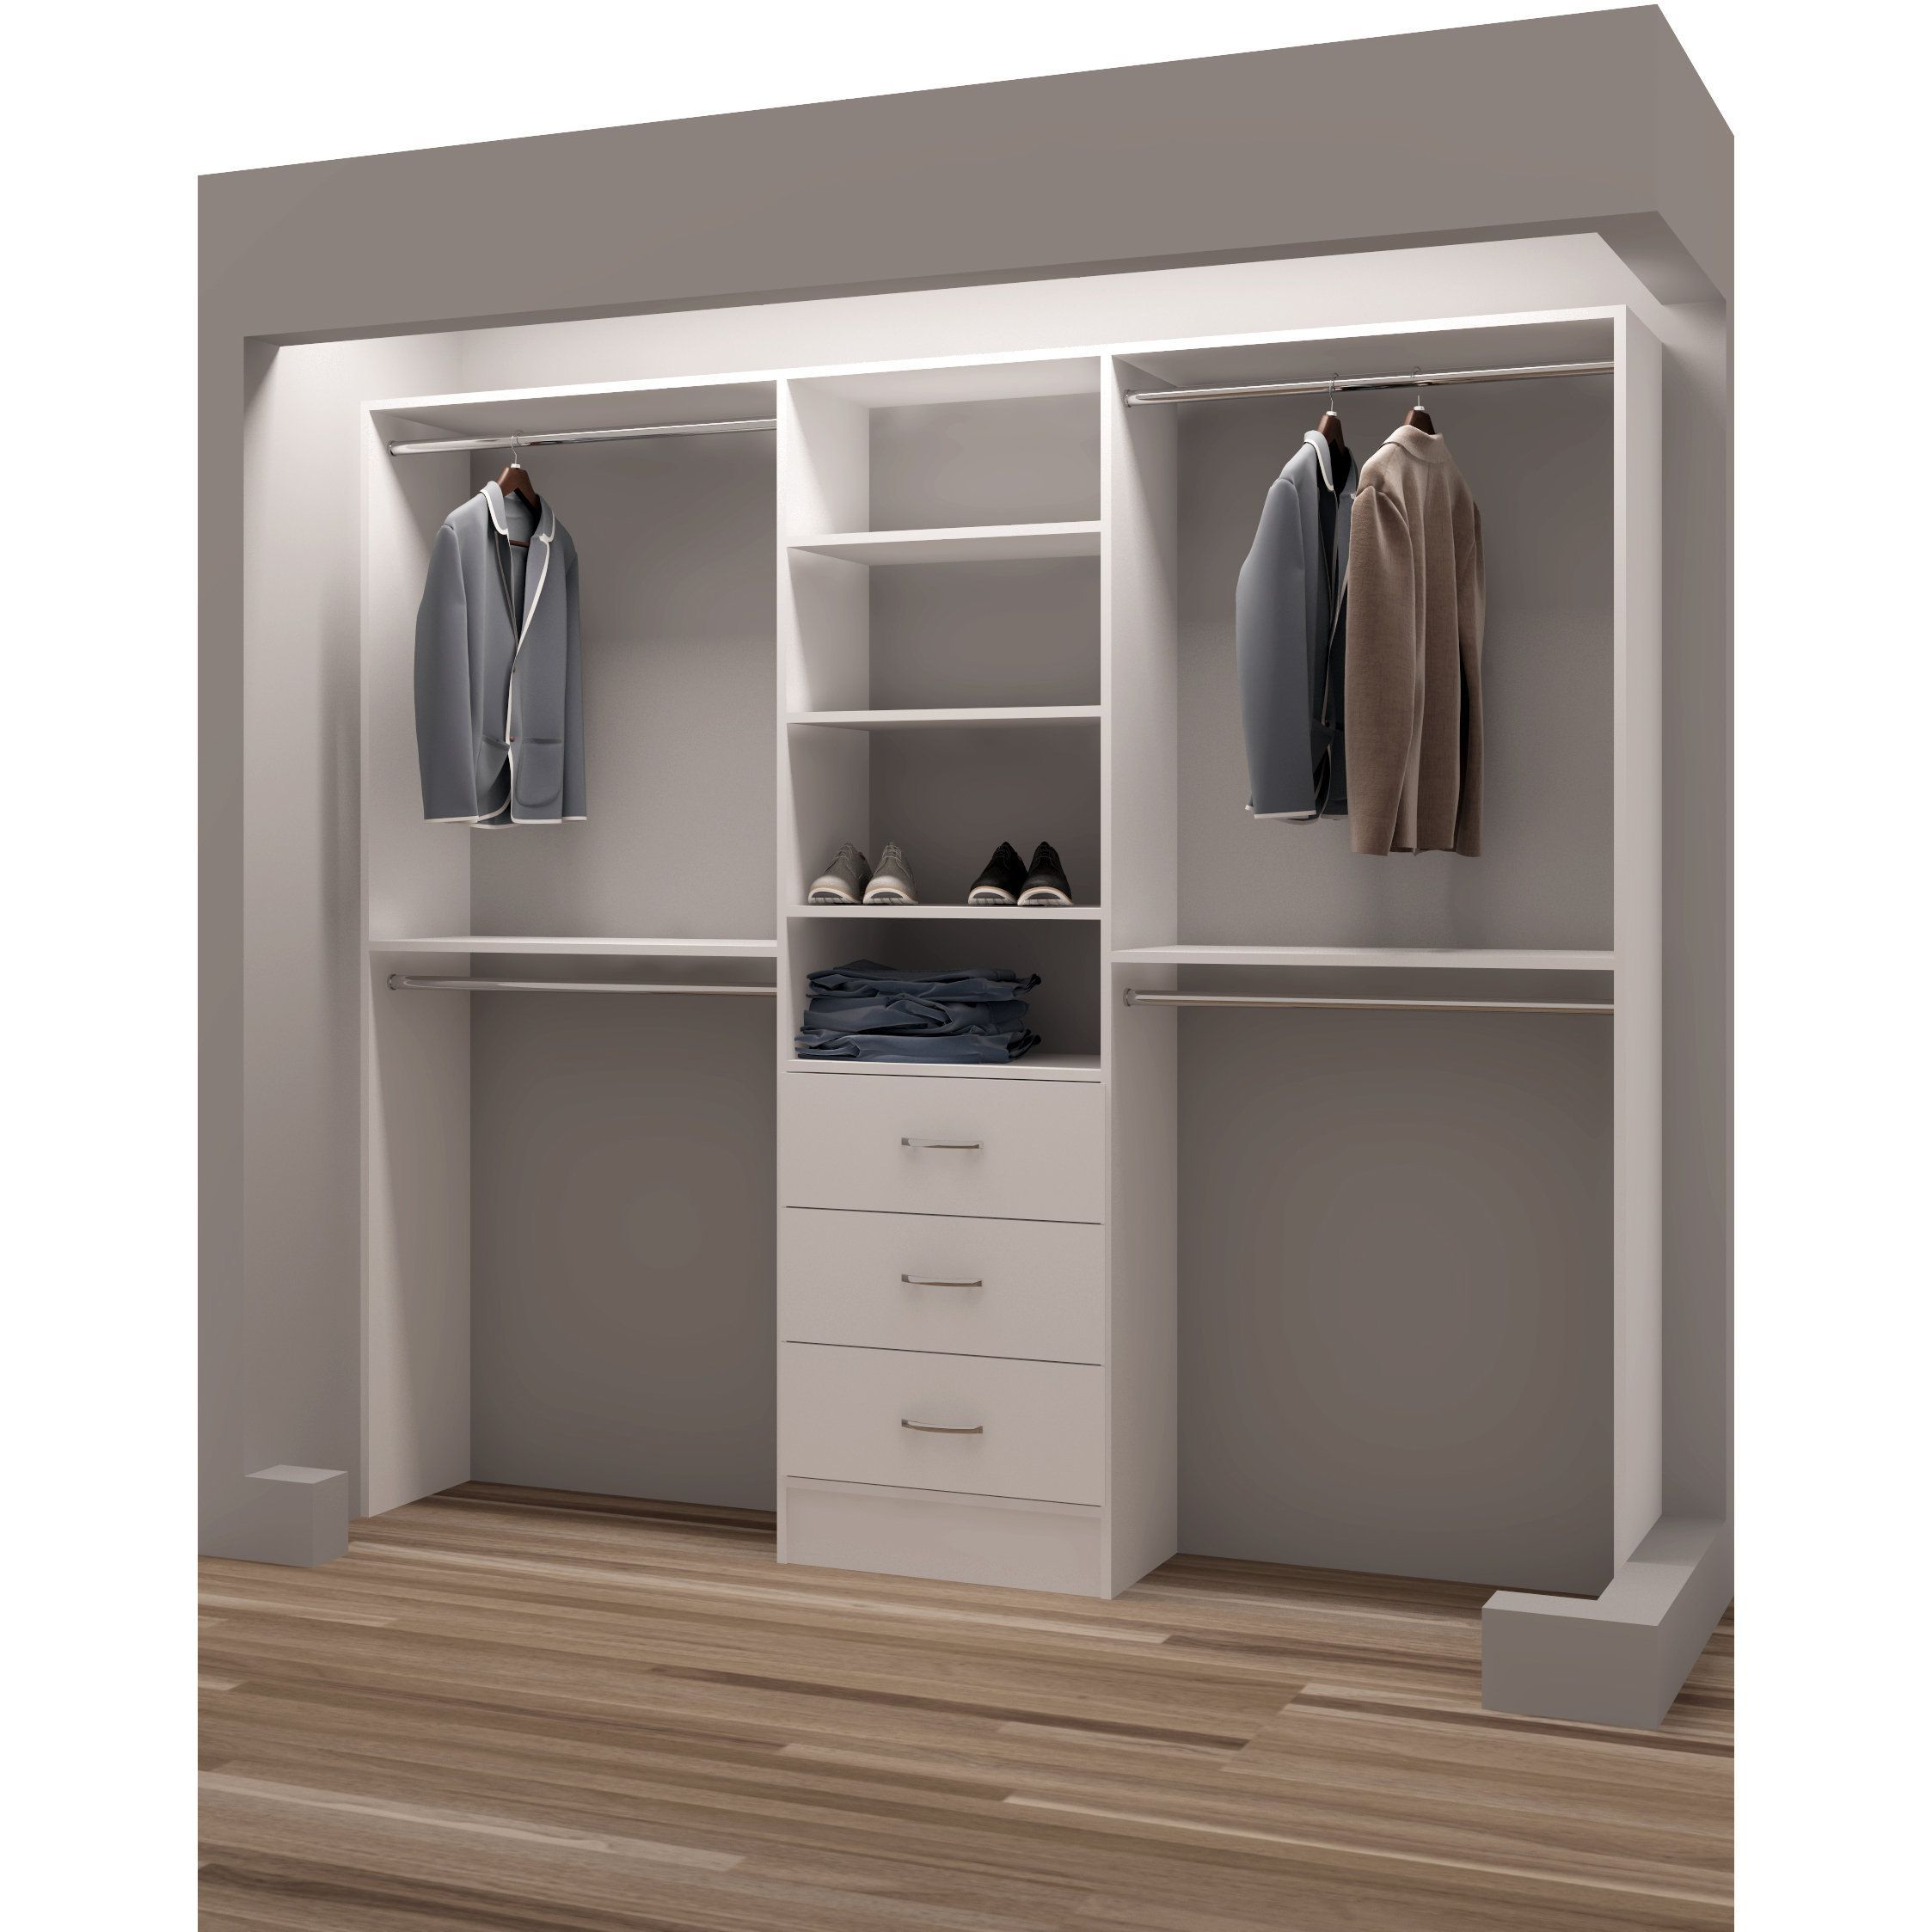 drawers in custom closets cherrywalk closet